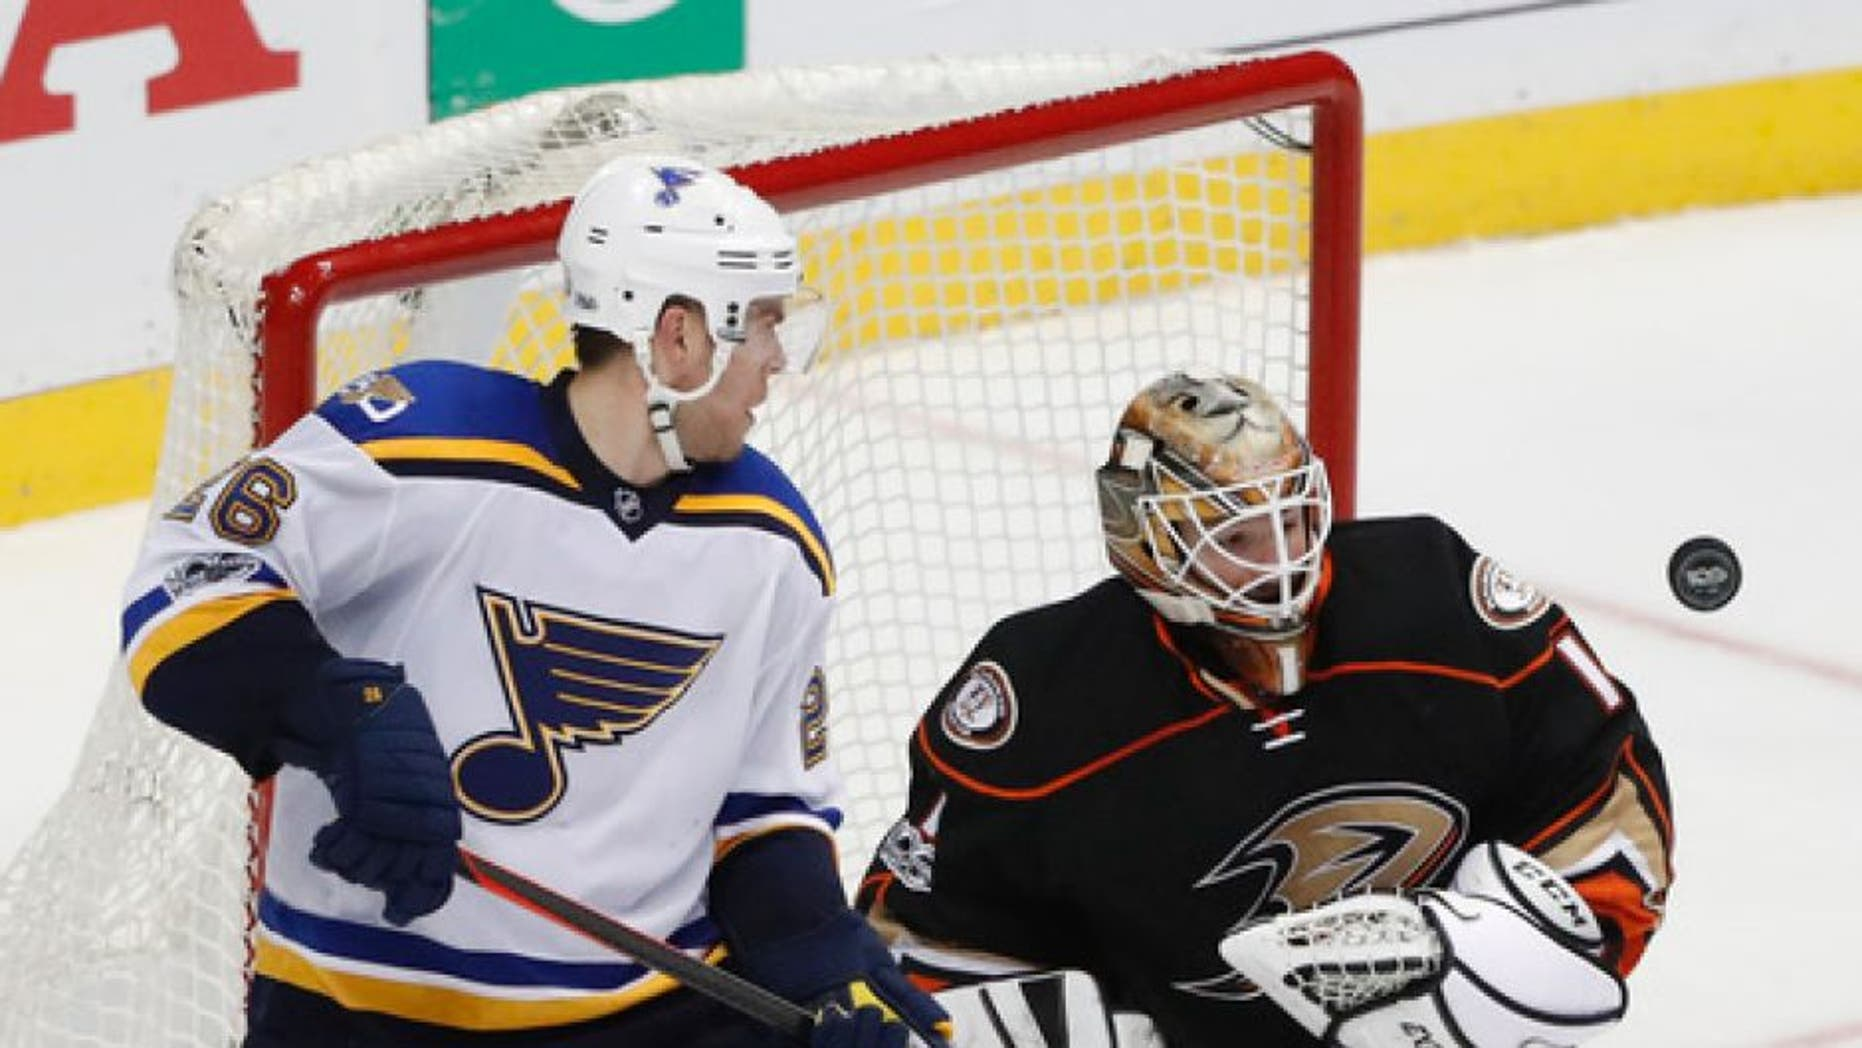 Anaheim Ducks goalie Jonathan Bernier, right, deflects the puck as St. Louis Blues' Paul Stastny watches during the third period of an NHL hockey game Wednesday, March 15, 2017, in Anaheim, Calif. The Ducks won 2-1. (AP Photo/Jae C. Hong)